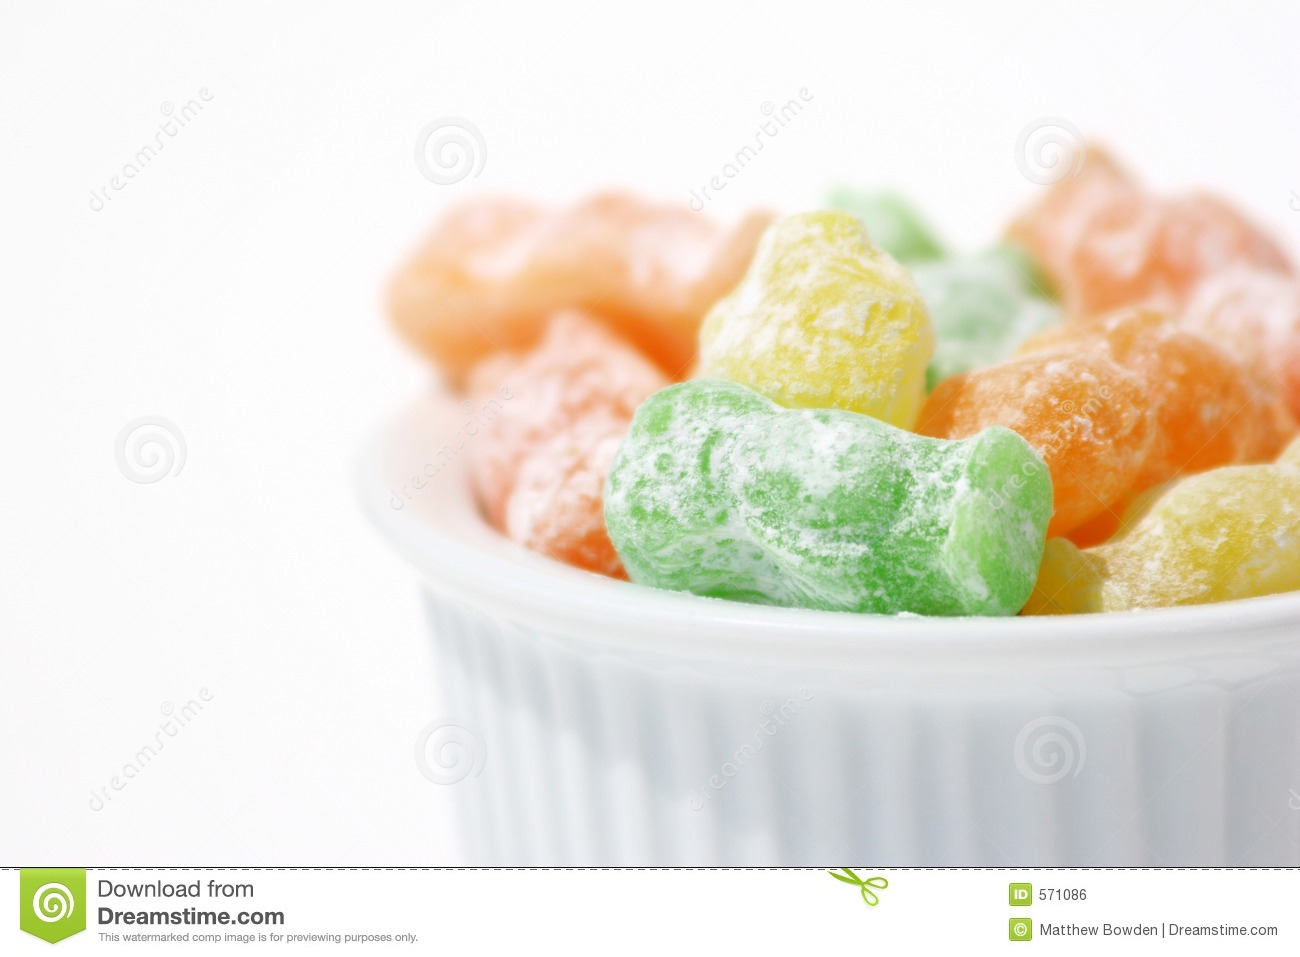 Put jelly babies in a large bowl (bowl big enough to hold a large amount of liquid as well as the jelly babies)